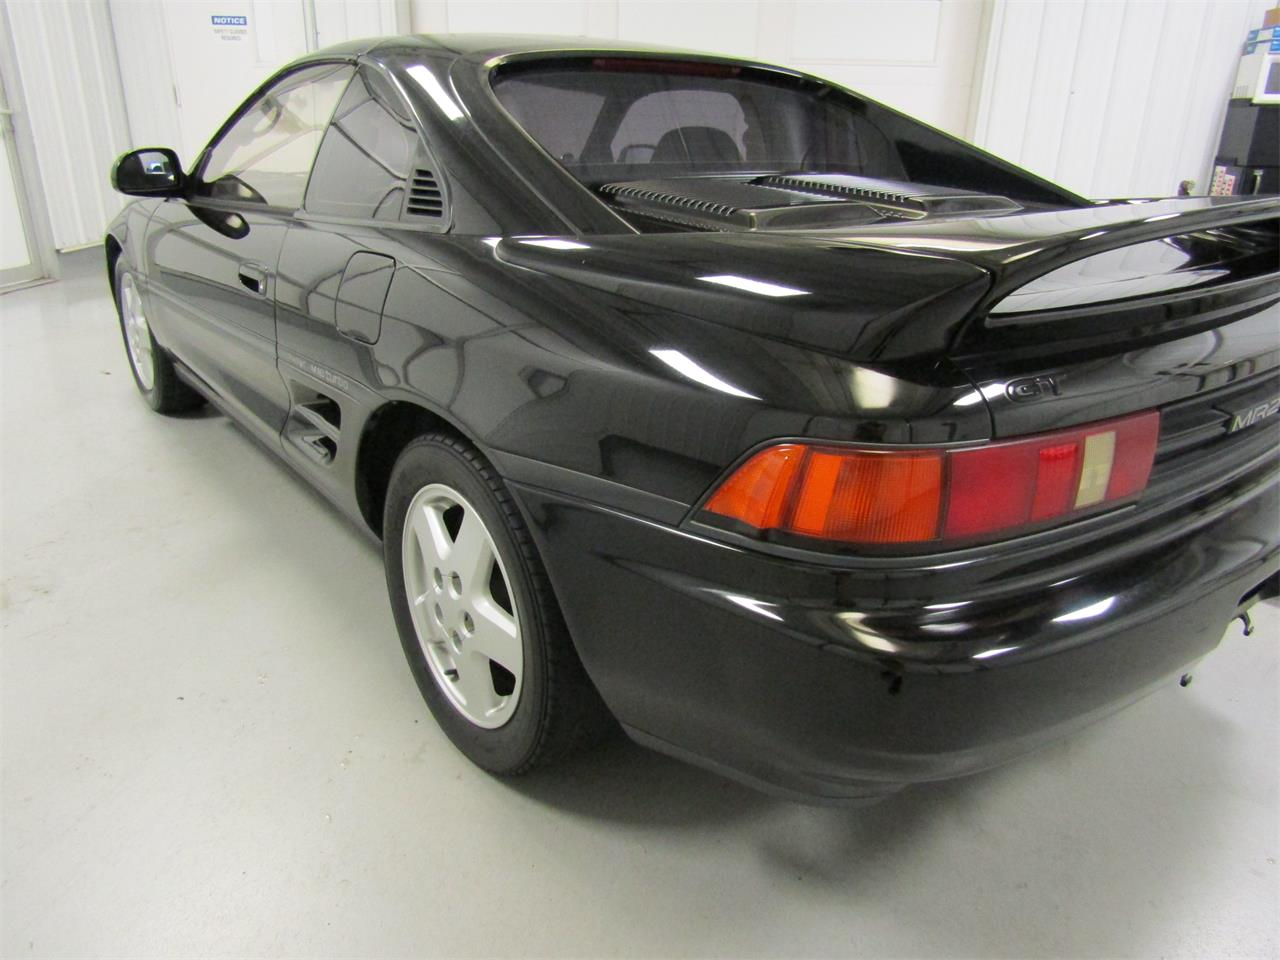 Large Picture of 1992 Toyota MR2 - $16,991.00 Offered by Duncan Imports & Classic Cars - OLED